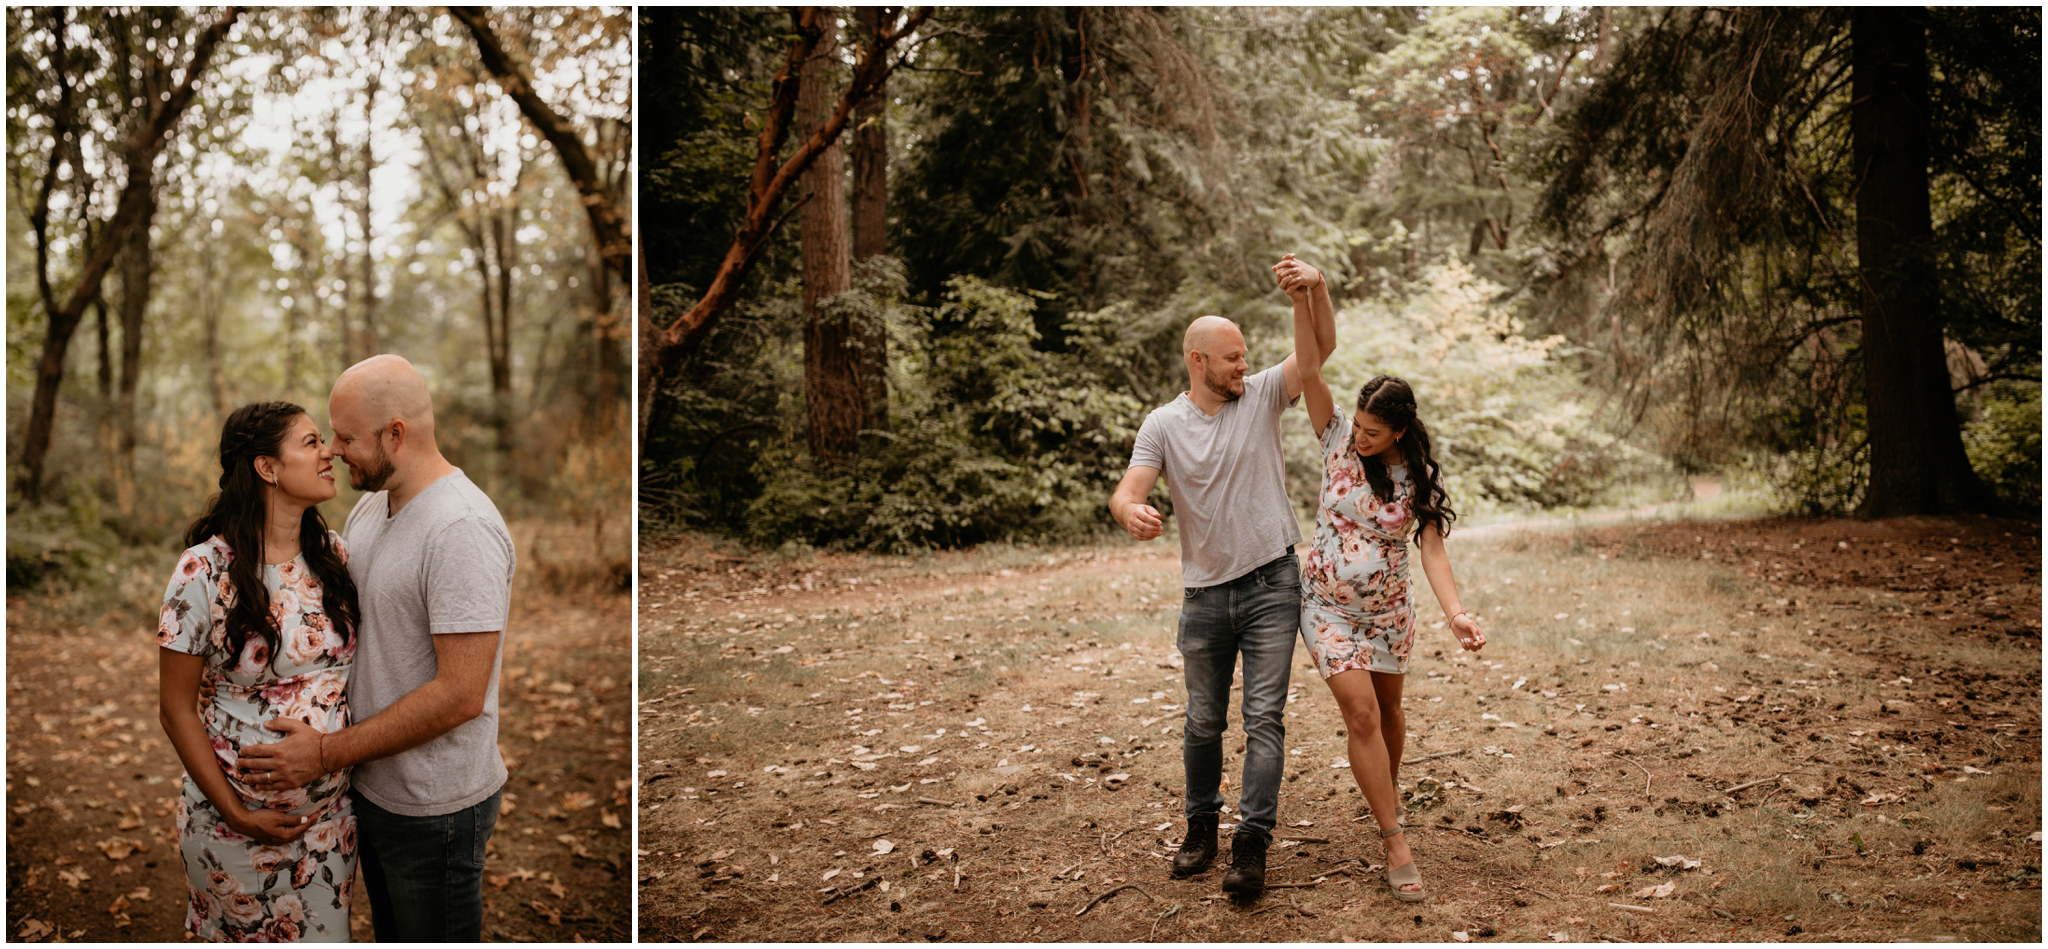 caitlin-jake-maternity-session-seattle-portrait-photographer-017.jpg